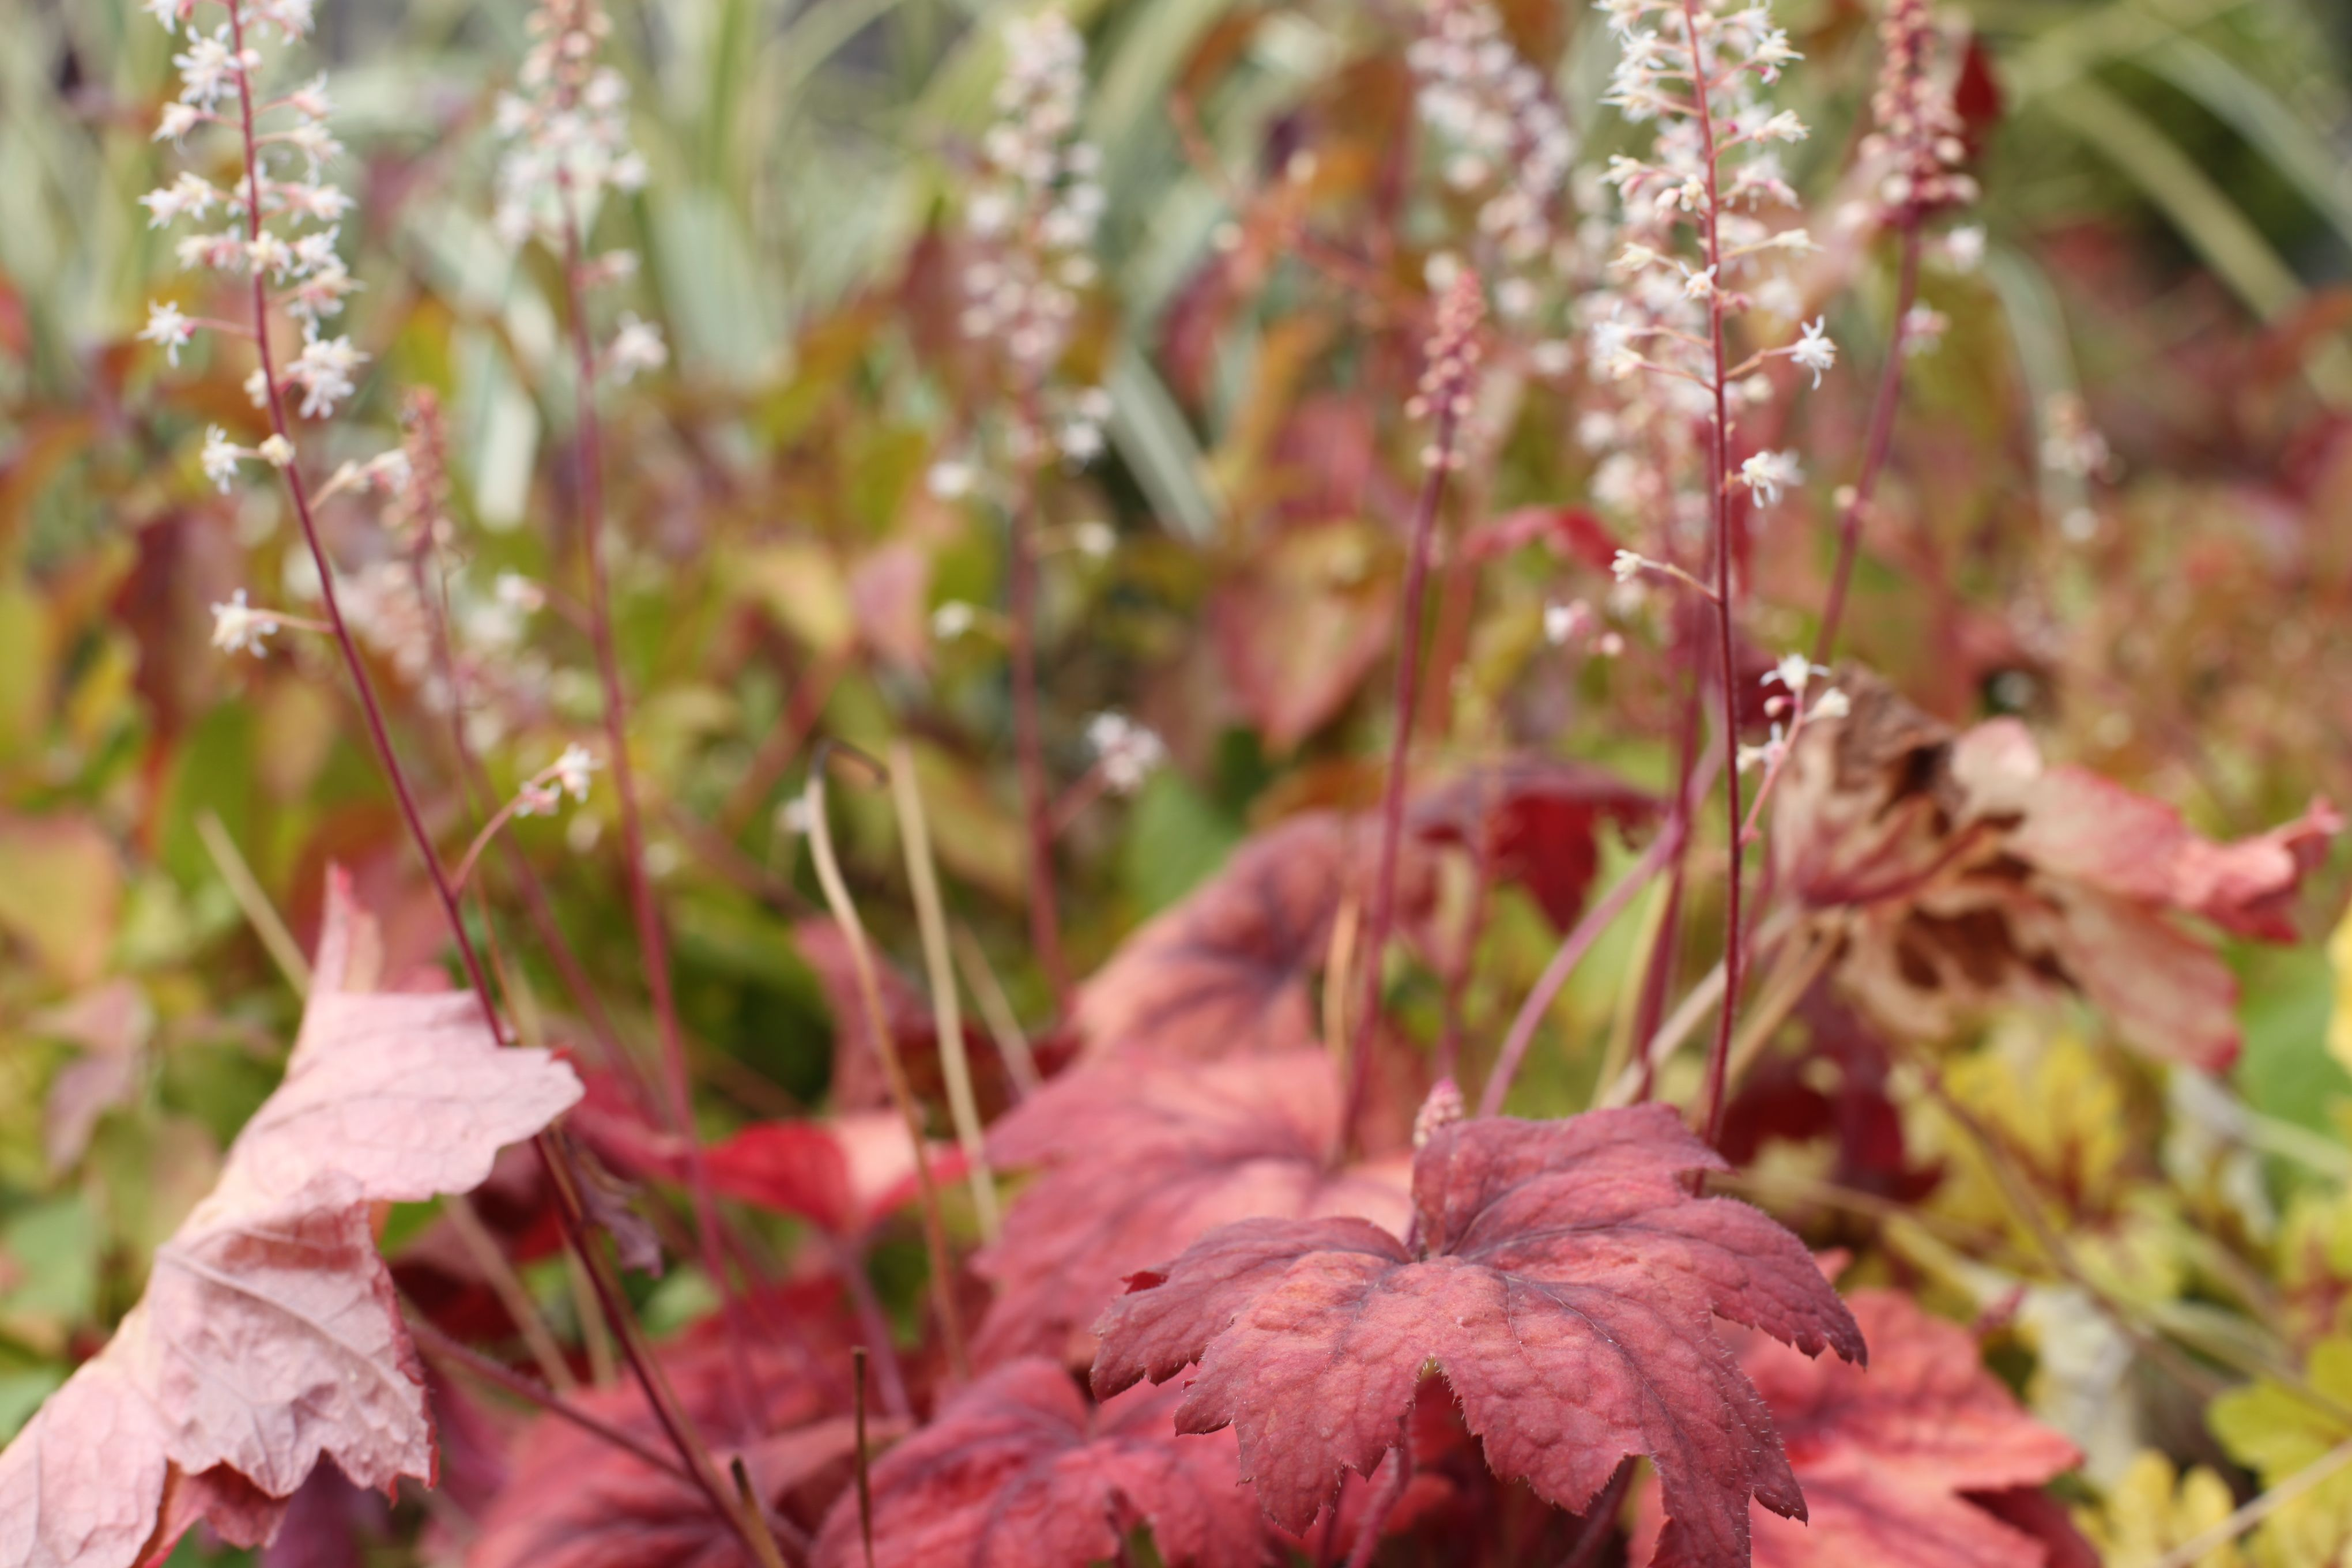 Heuchera 'Sweet Tea' - Large deeply lobed, burnt orange leaves that have richer plum central blotch and veining. Shade loving perennial, a wonderful container plant. www.thepavilion.ie